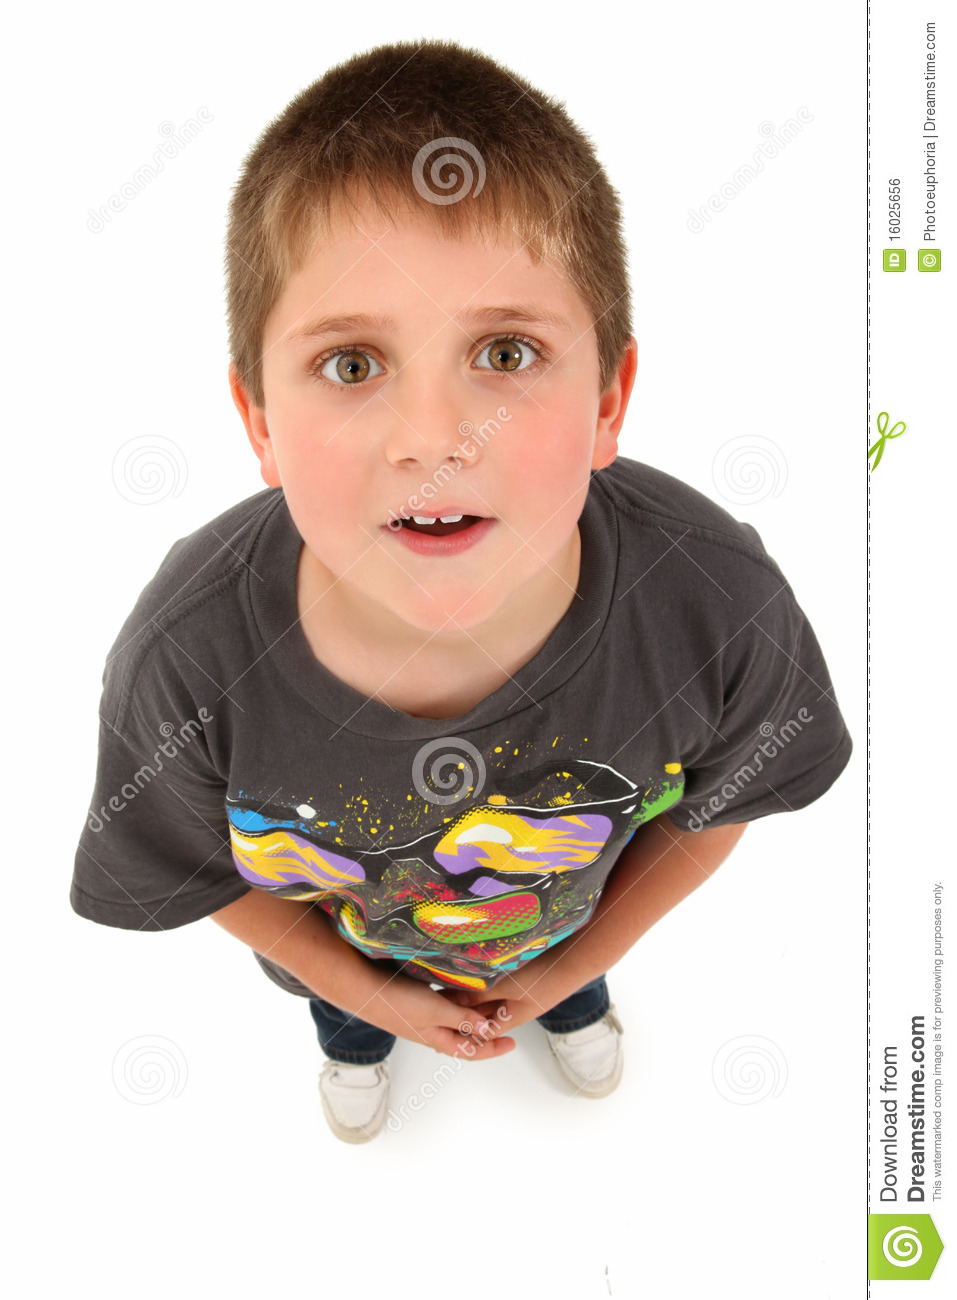 8 Year Boy Bedroom Design: Adorable 8 Year Old Boy Looking Up Stock Photo